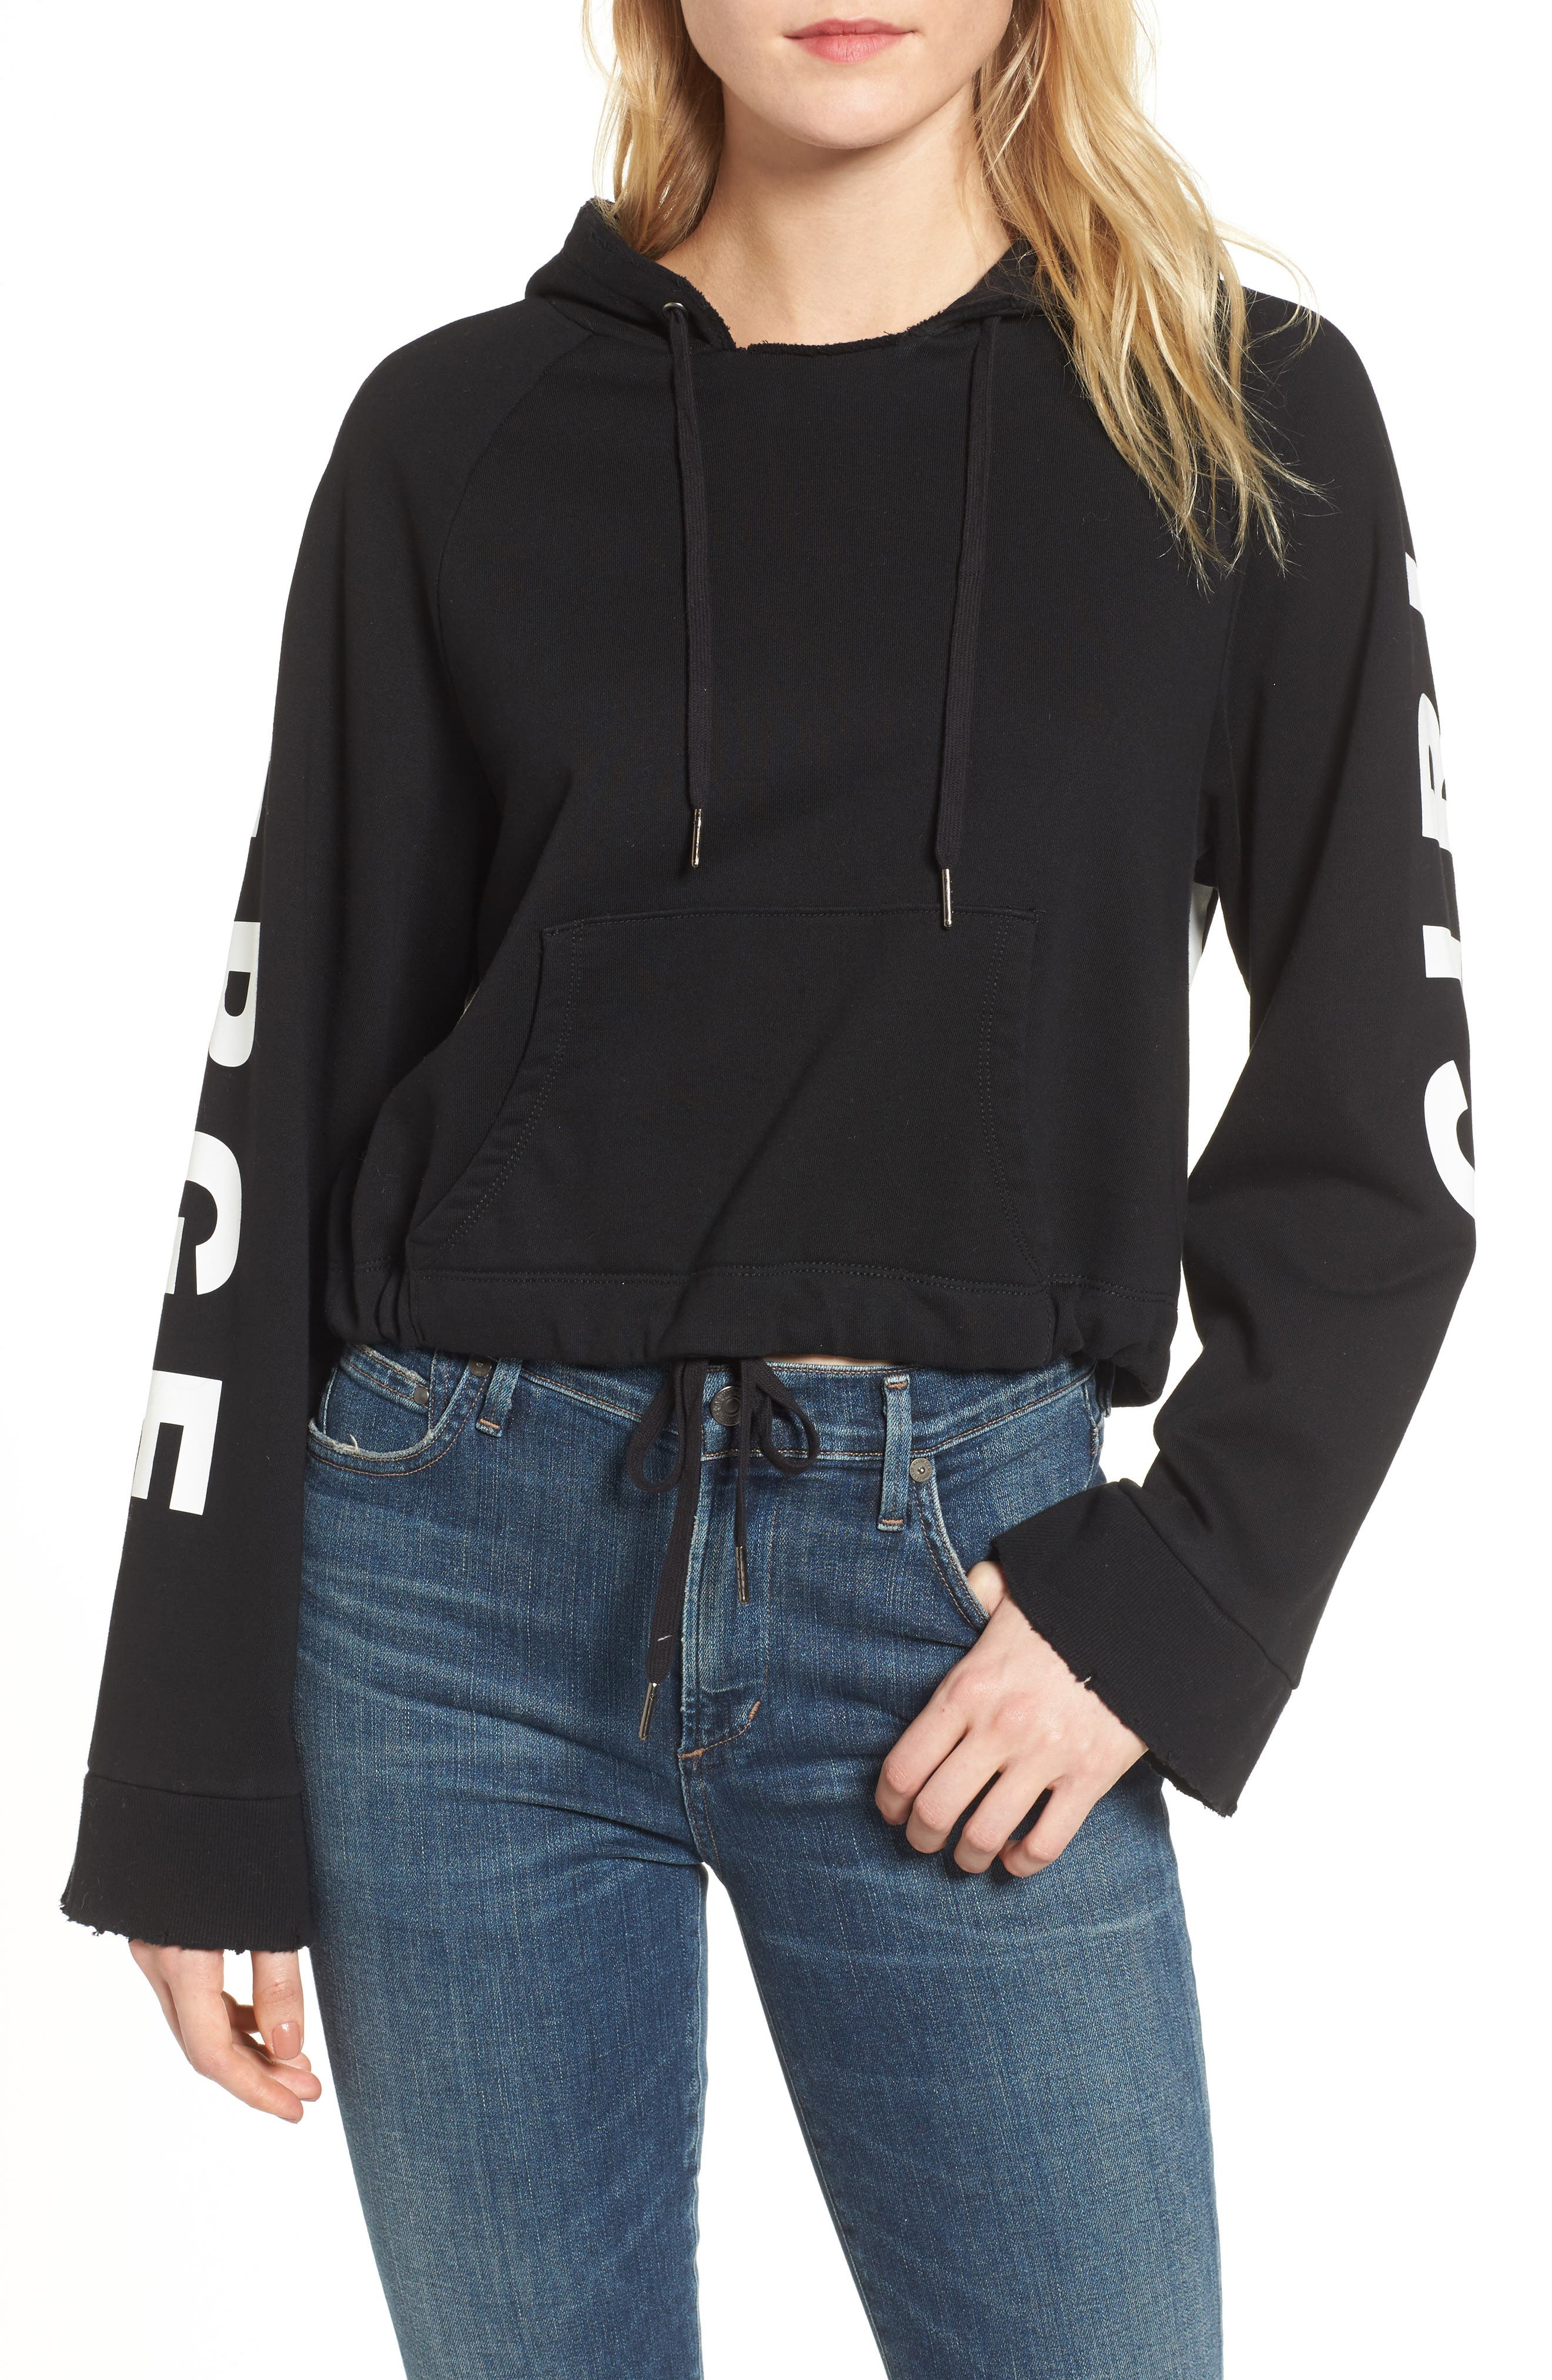 Girl on the Verge Crop Sweatshirt,                             Main thumbnail 1, color,                             001